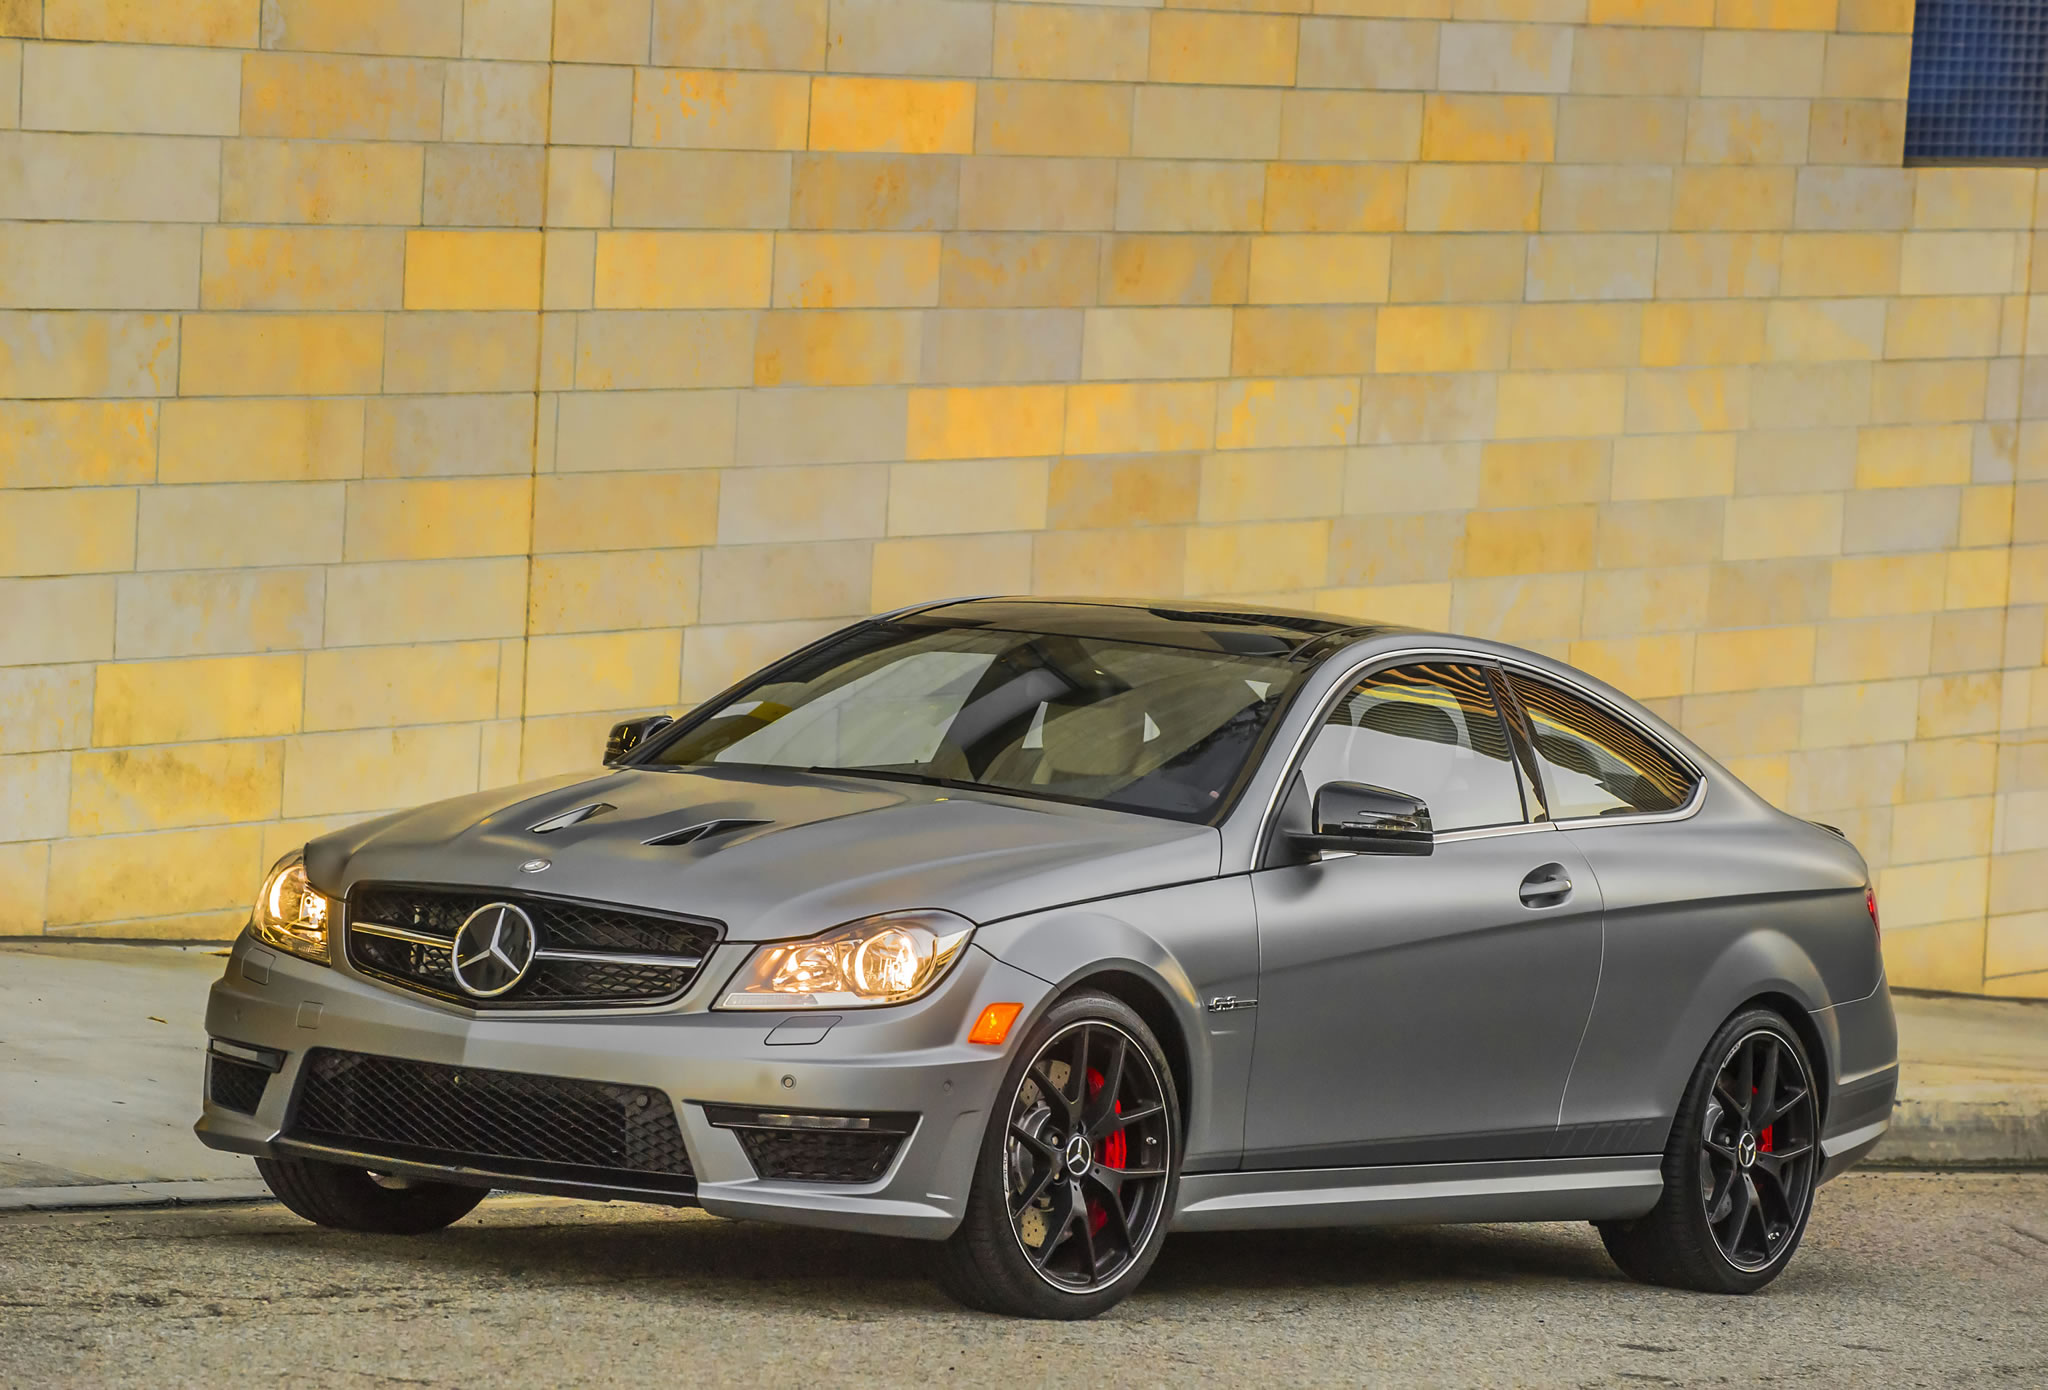 2014 mercedes benz c63 amg coupe edition 507 front photo for 2014 mercedes benz c63 amg edition 507